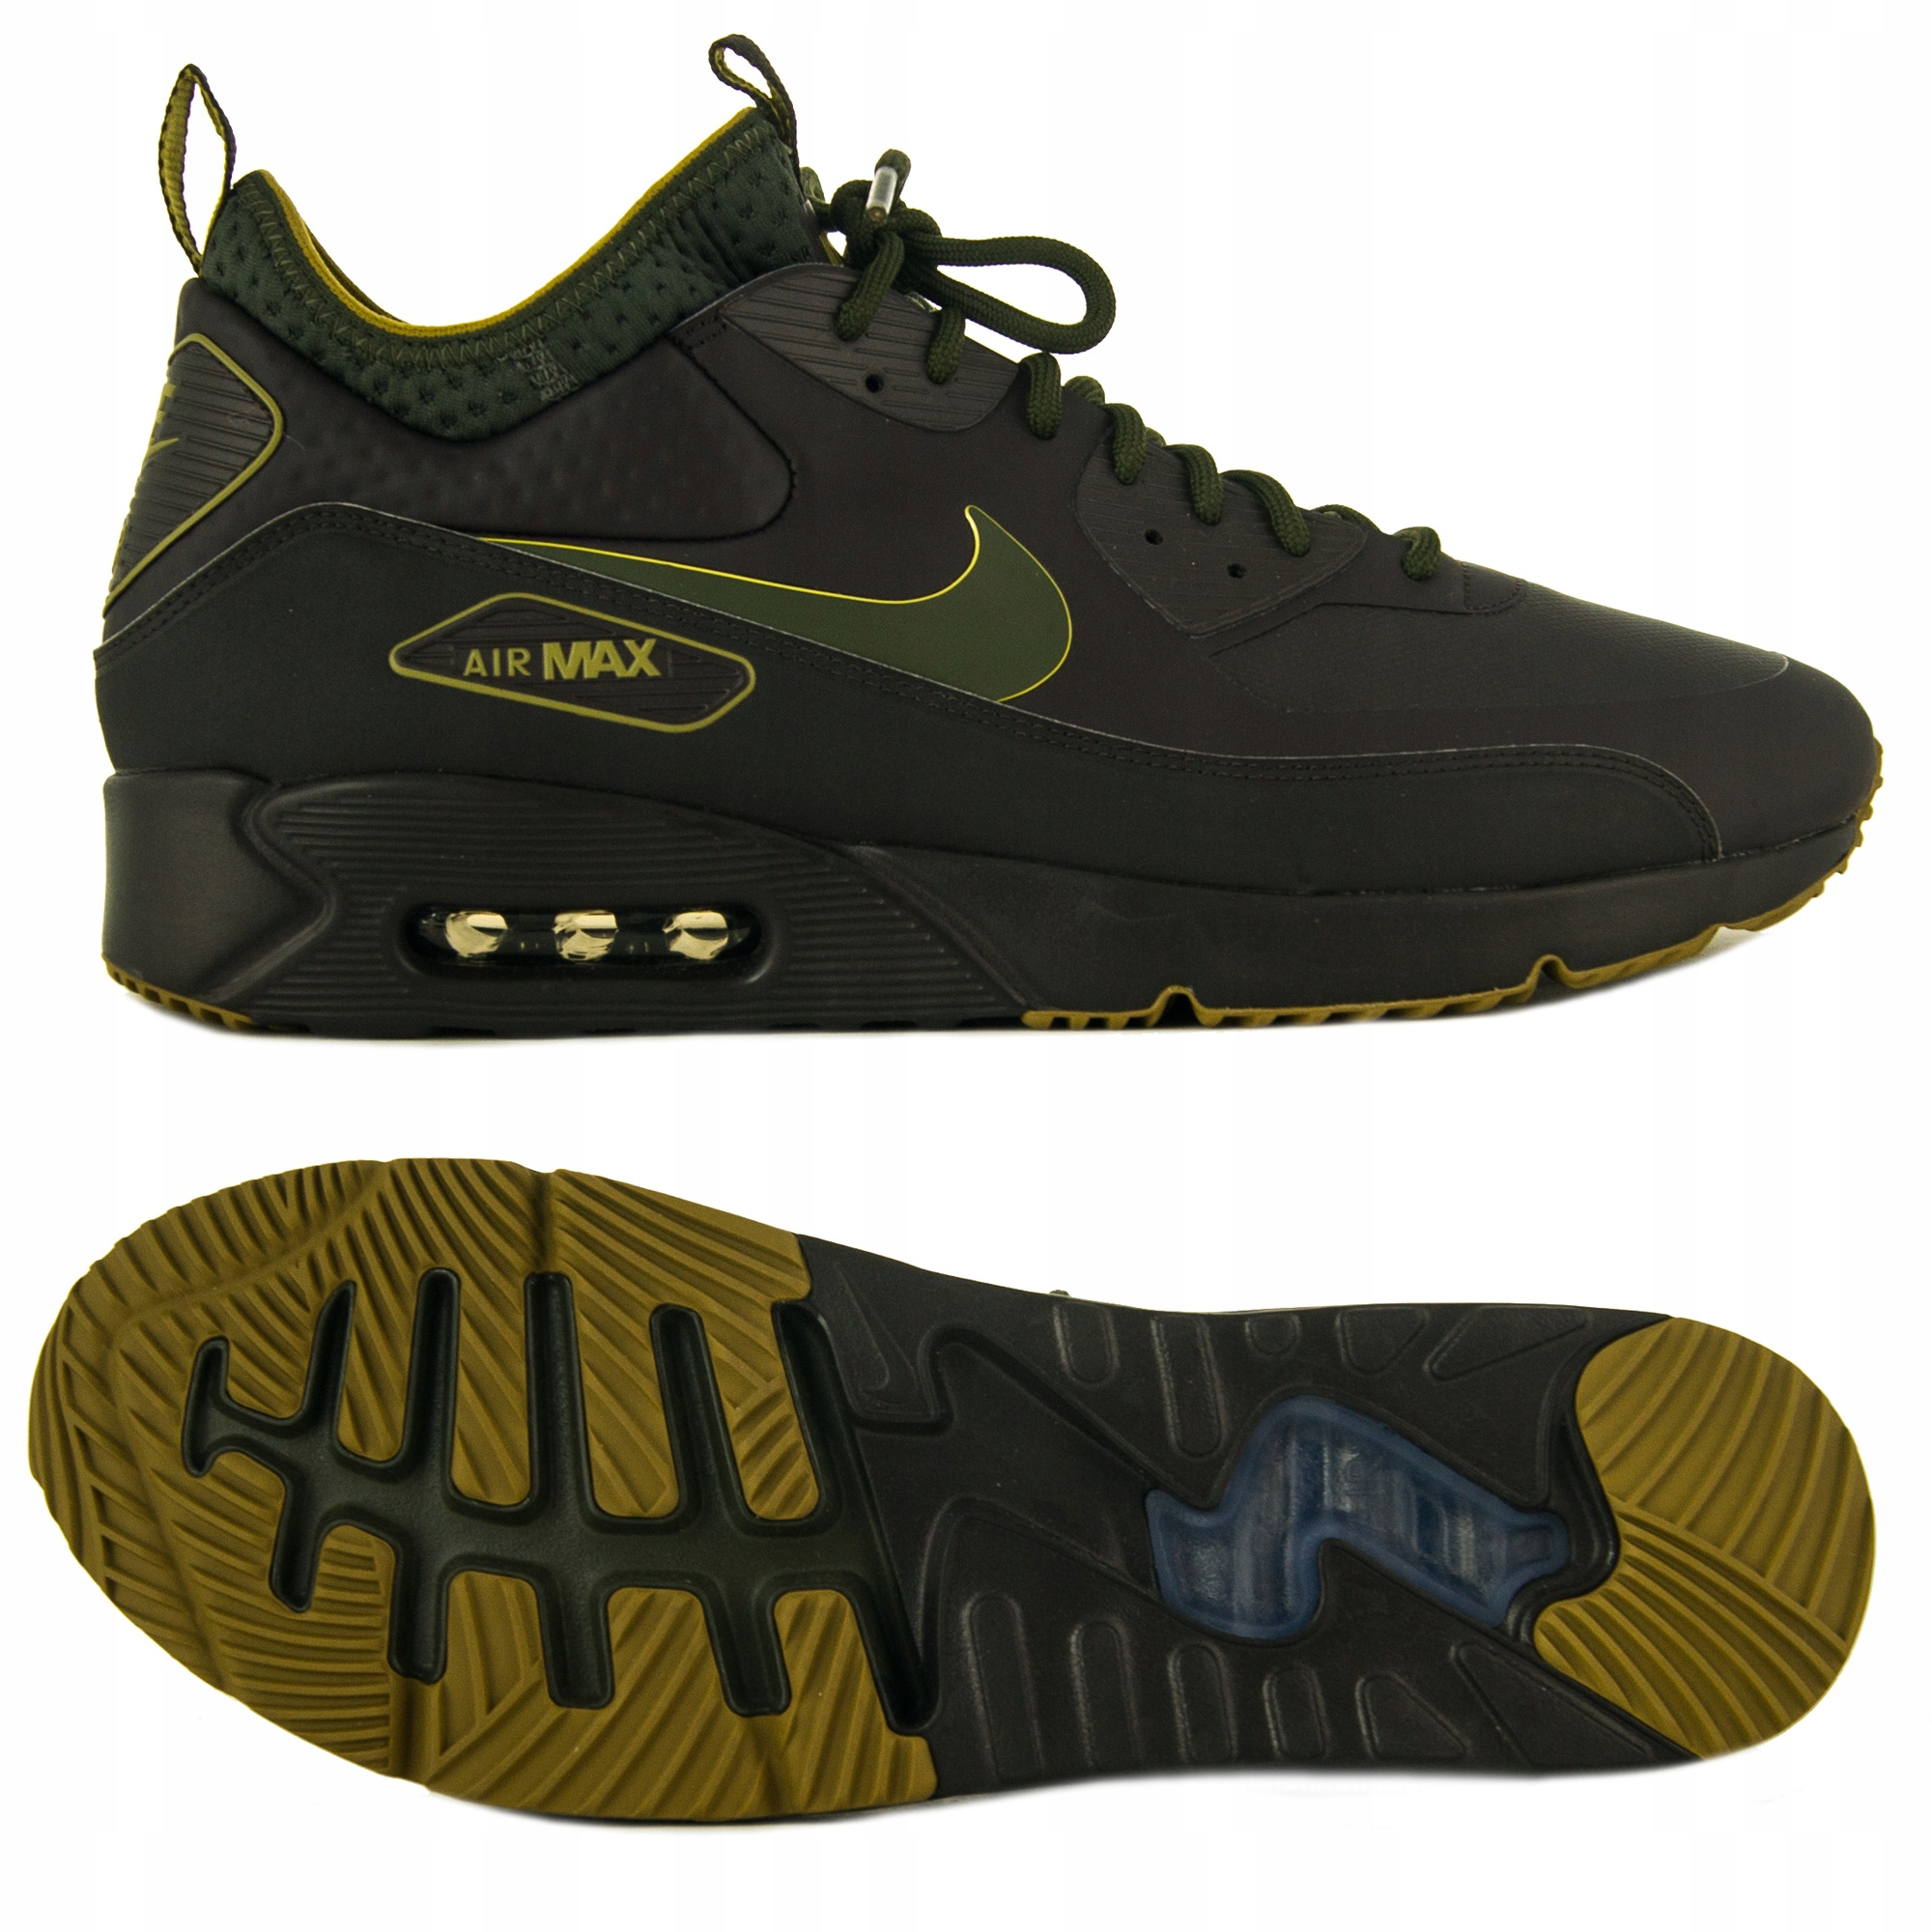 reputable site 8c3a0 a103b MĘSKIE NIKE AIR MAX 90 ULTRA MID WINTER SE 49,5